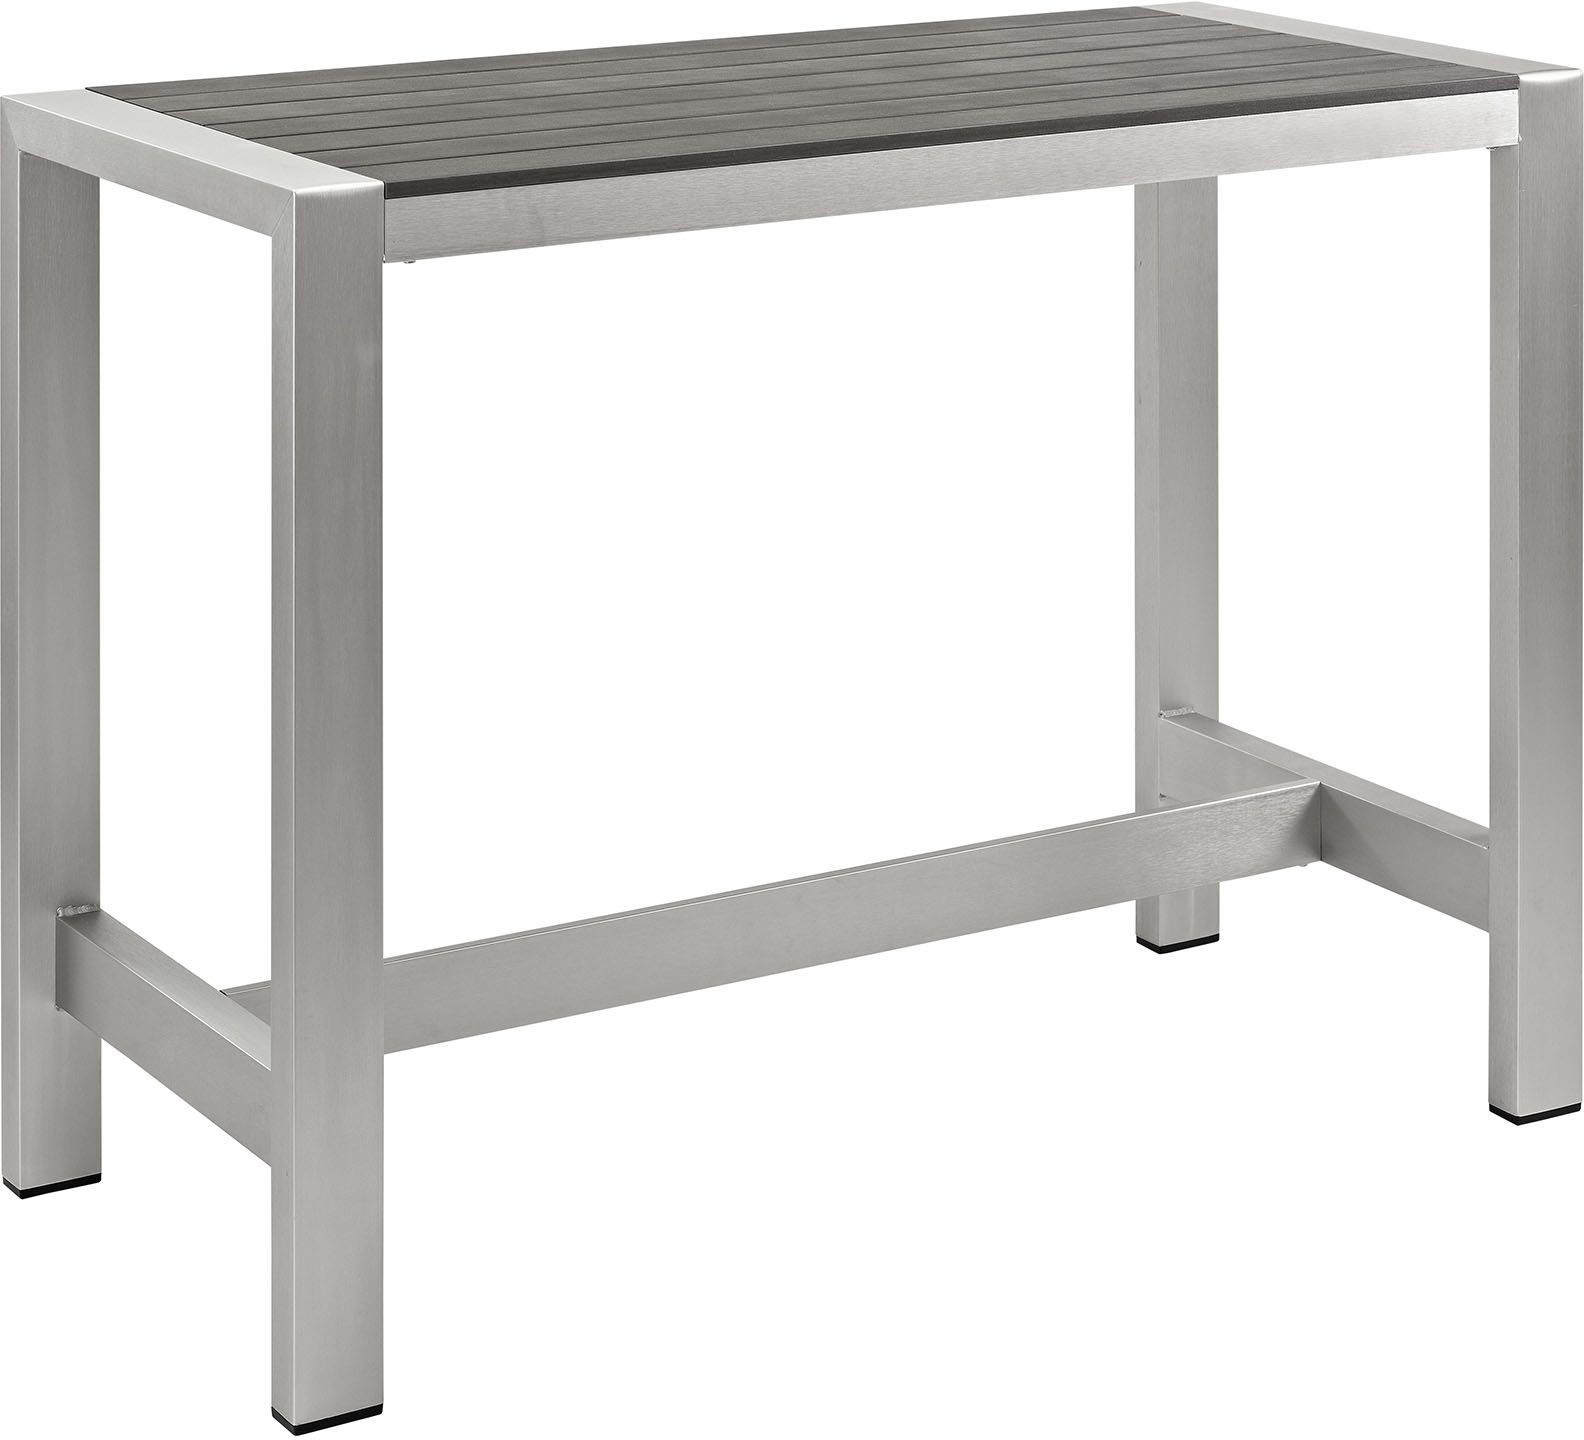 shore silver gray aluminum outdoor patio rectangular bar table eei 2253 slv gry renegade furniture. Black Bedroom Furniture Sets. Home Design Ideas